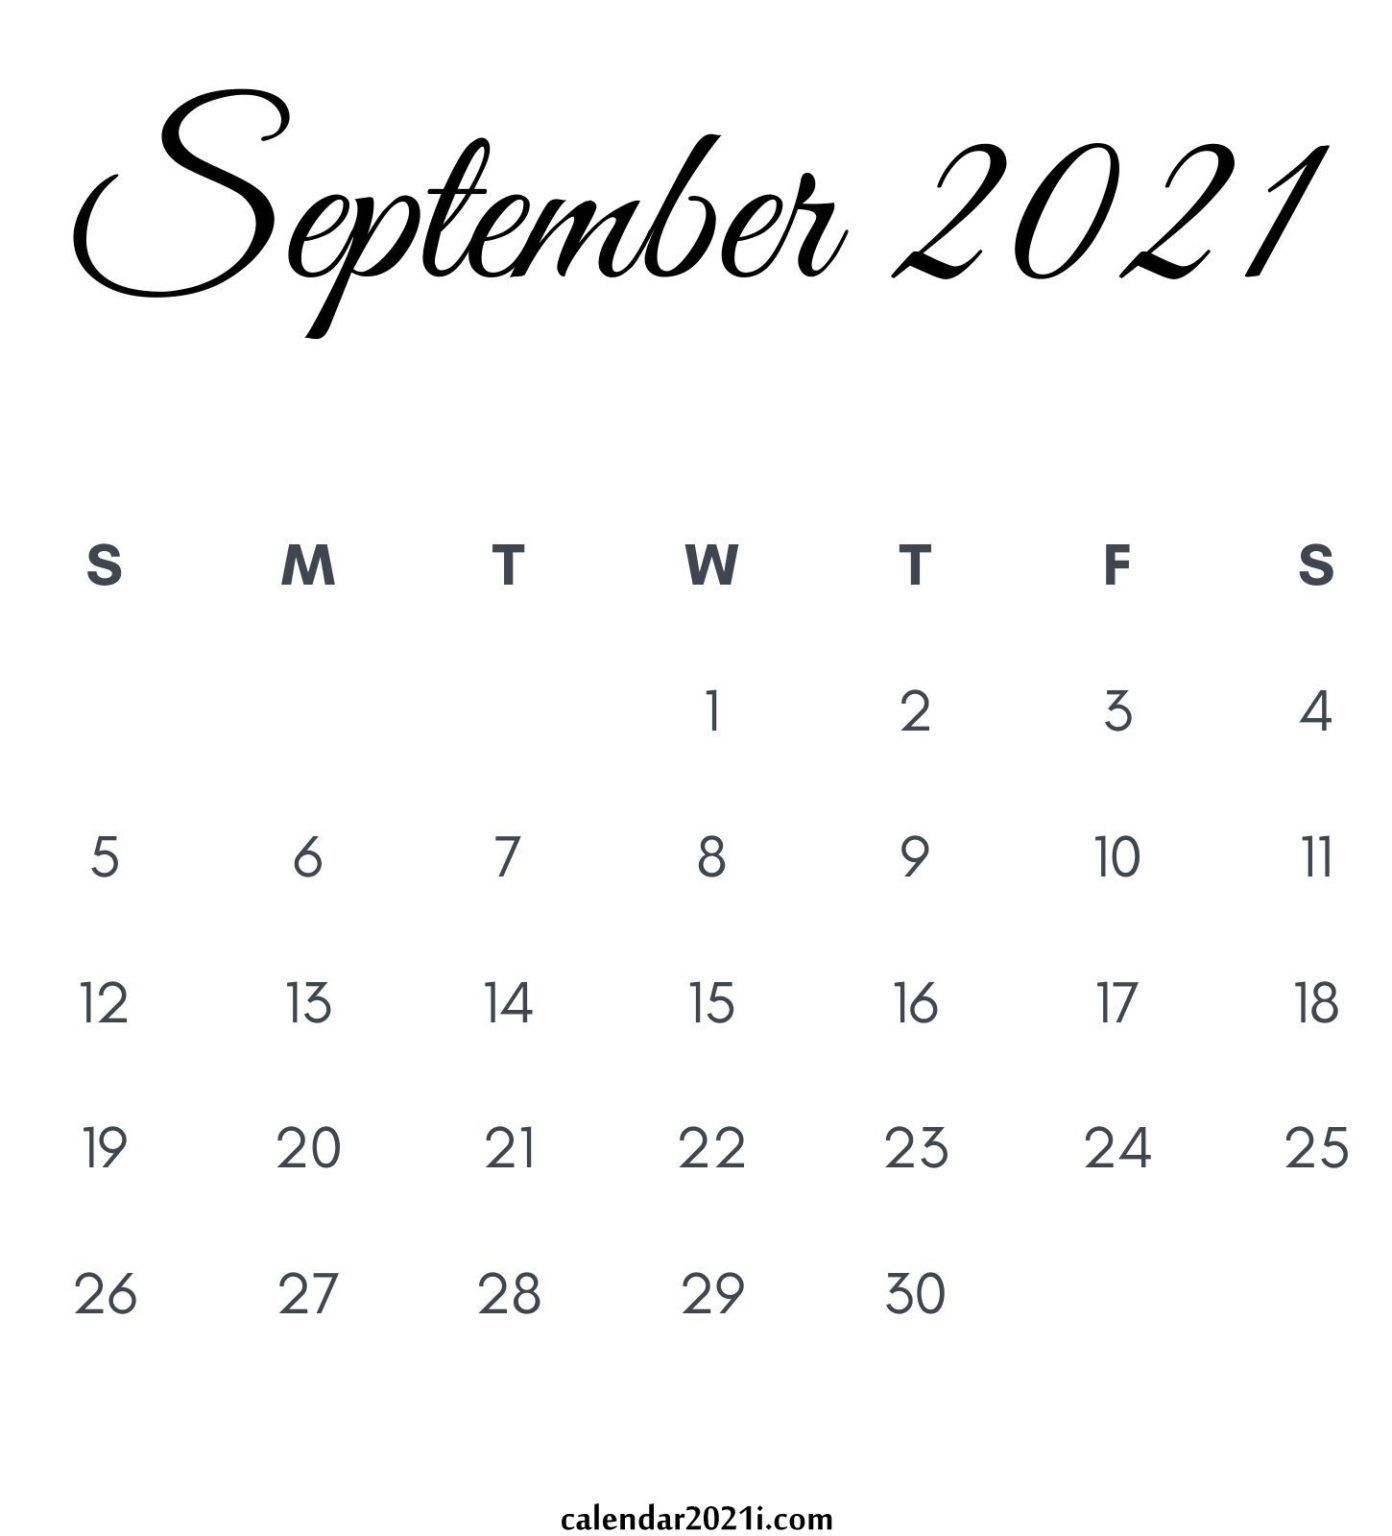 September 2021 Calendar Printable In 2020 | Monthly Calendar